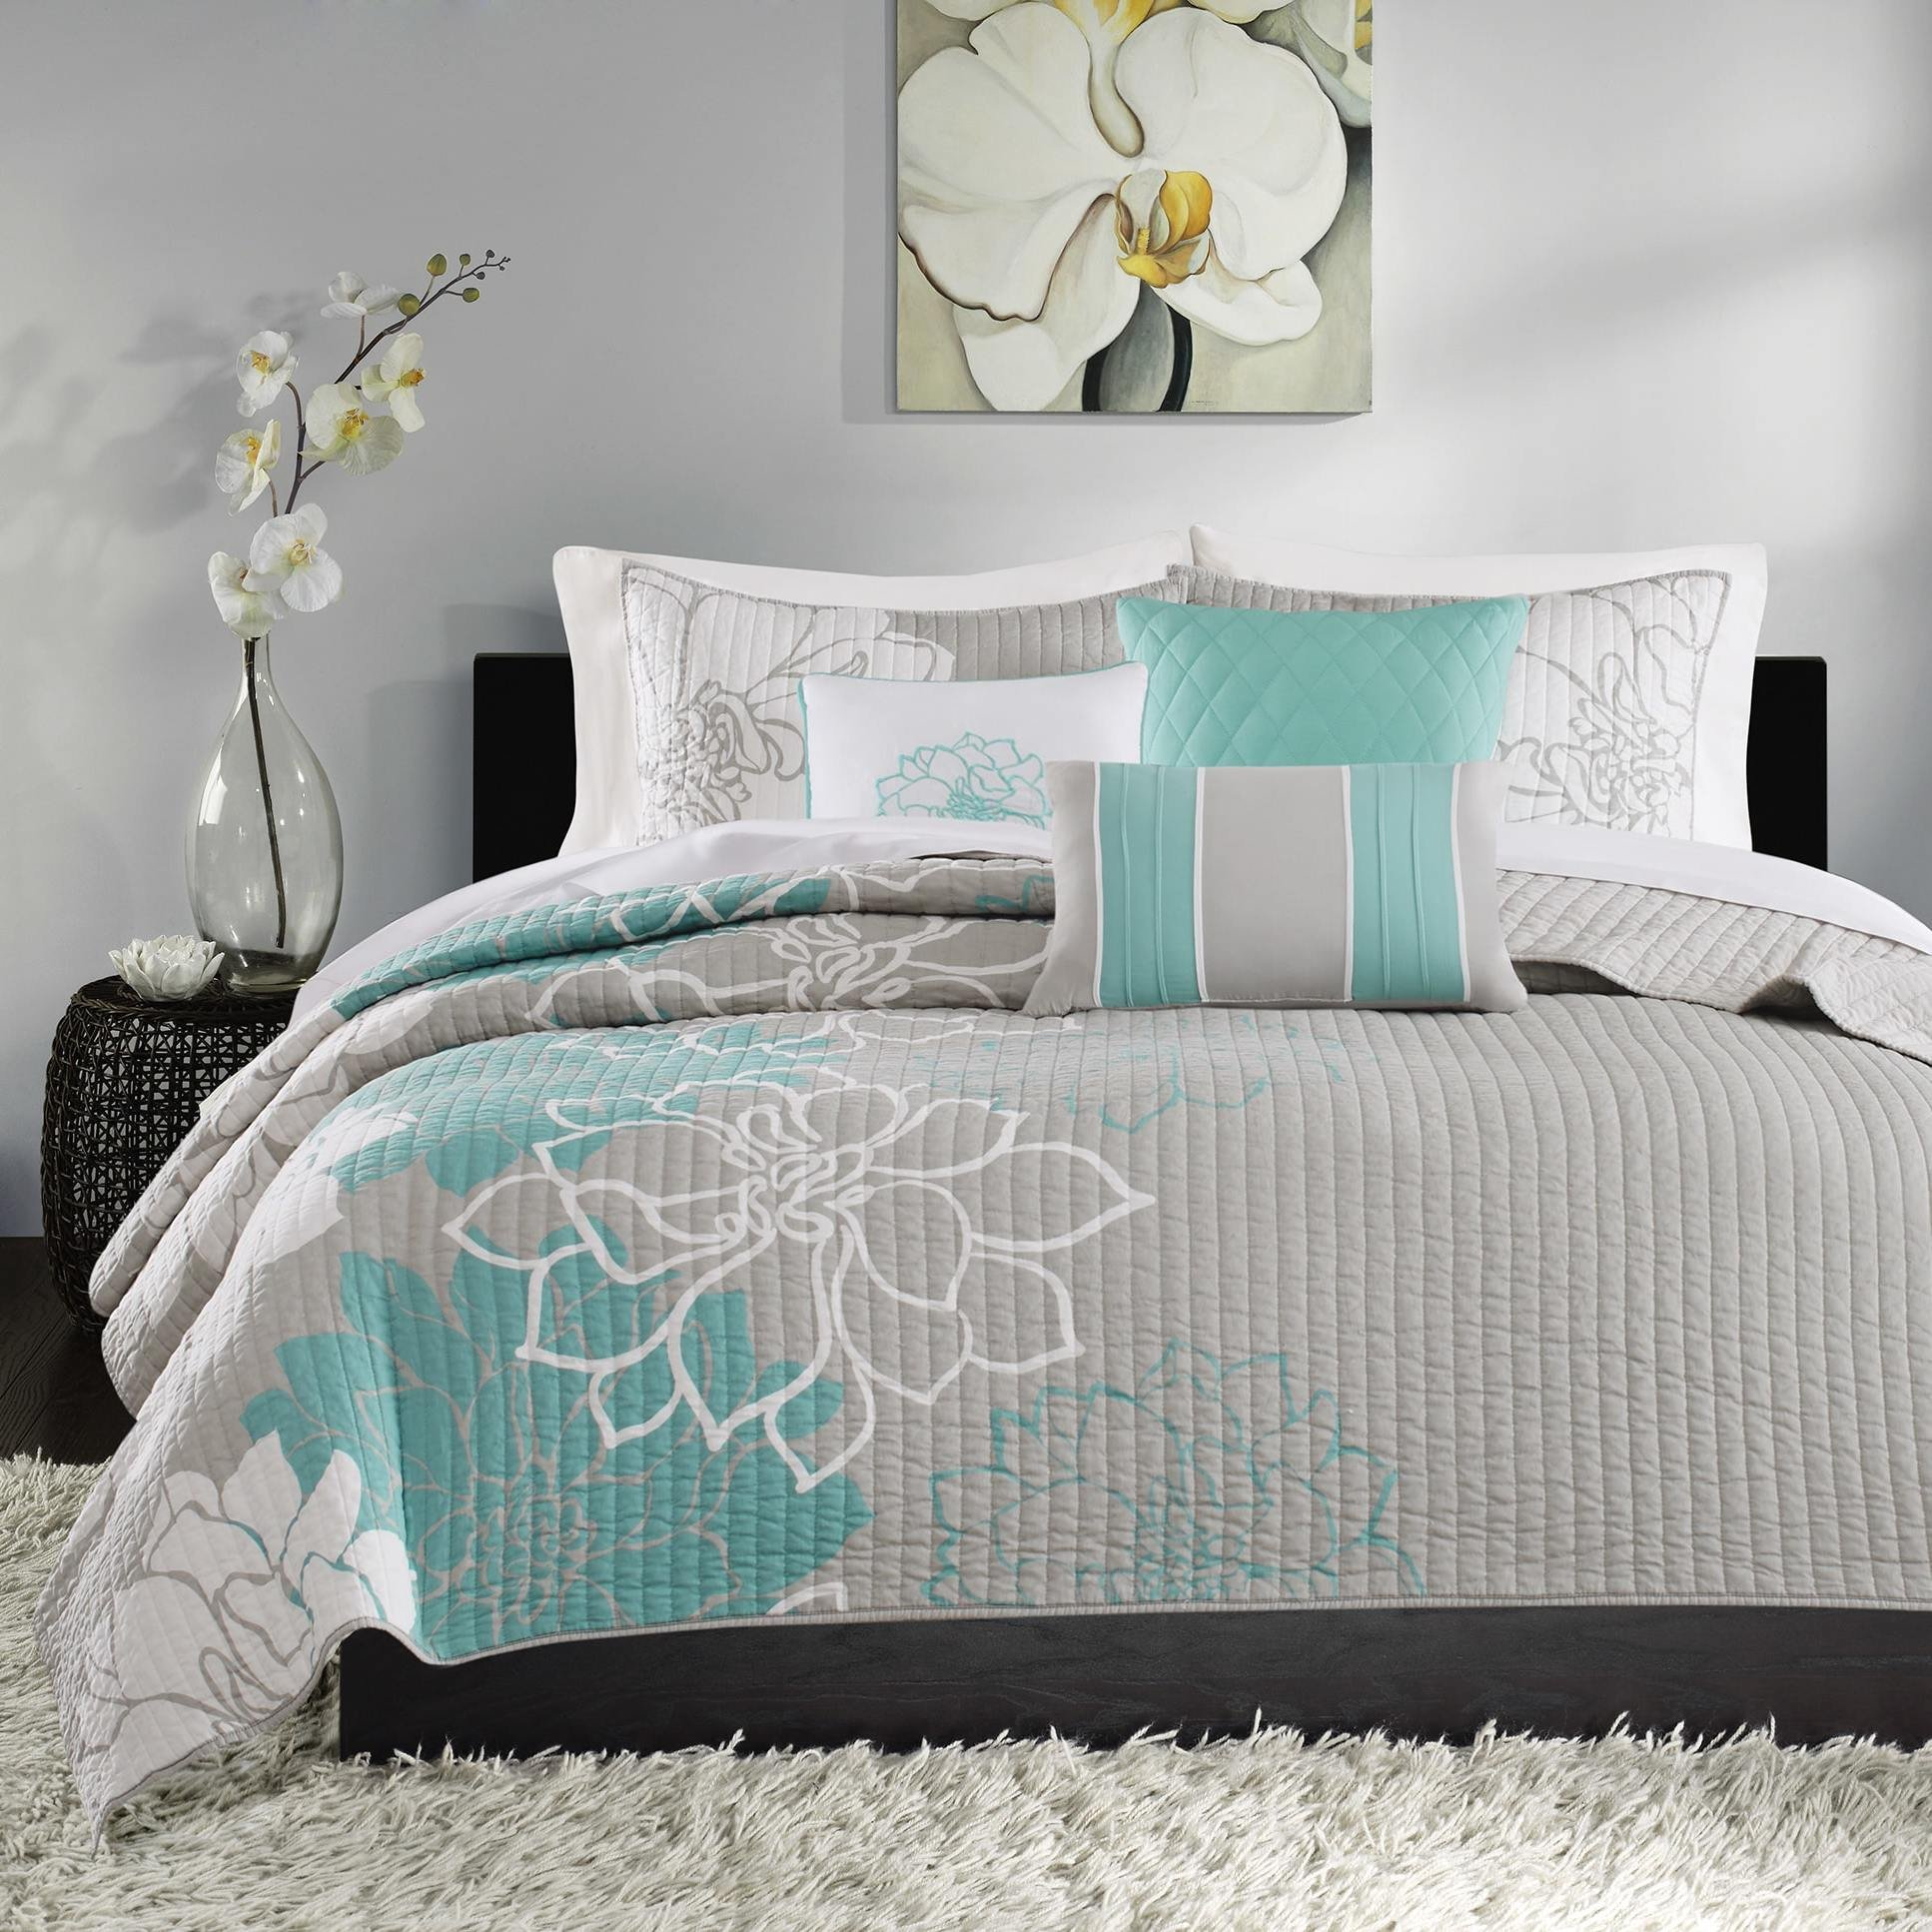 6 Piece Stunning Grey Blue White Full Queen Coverlet Set, Stylish Contemporary Floral Themed Reversible Bedding Aqua Turquoise Modern Gorgeous Summer Lily Pretty Slate Teal Trendy Beautiful, Cotton